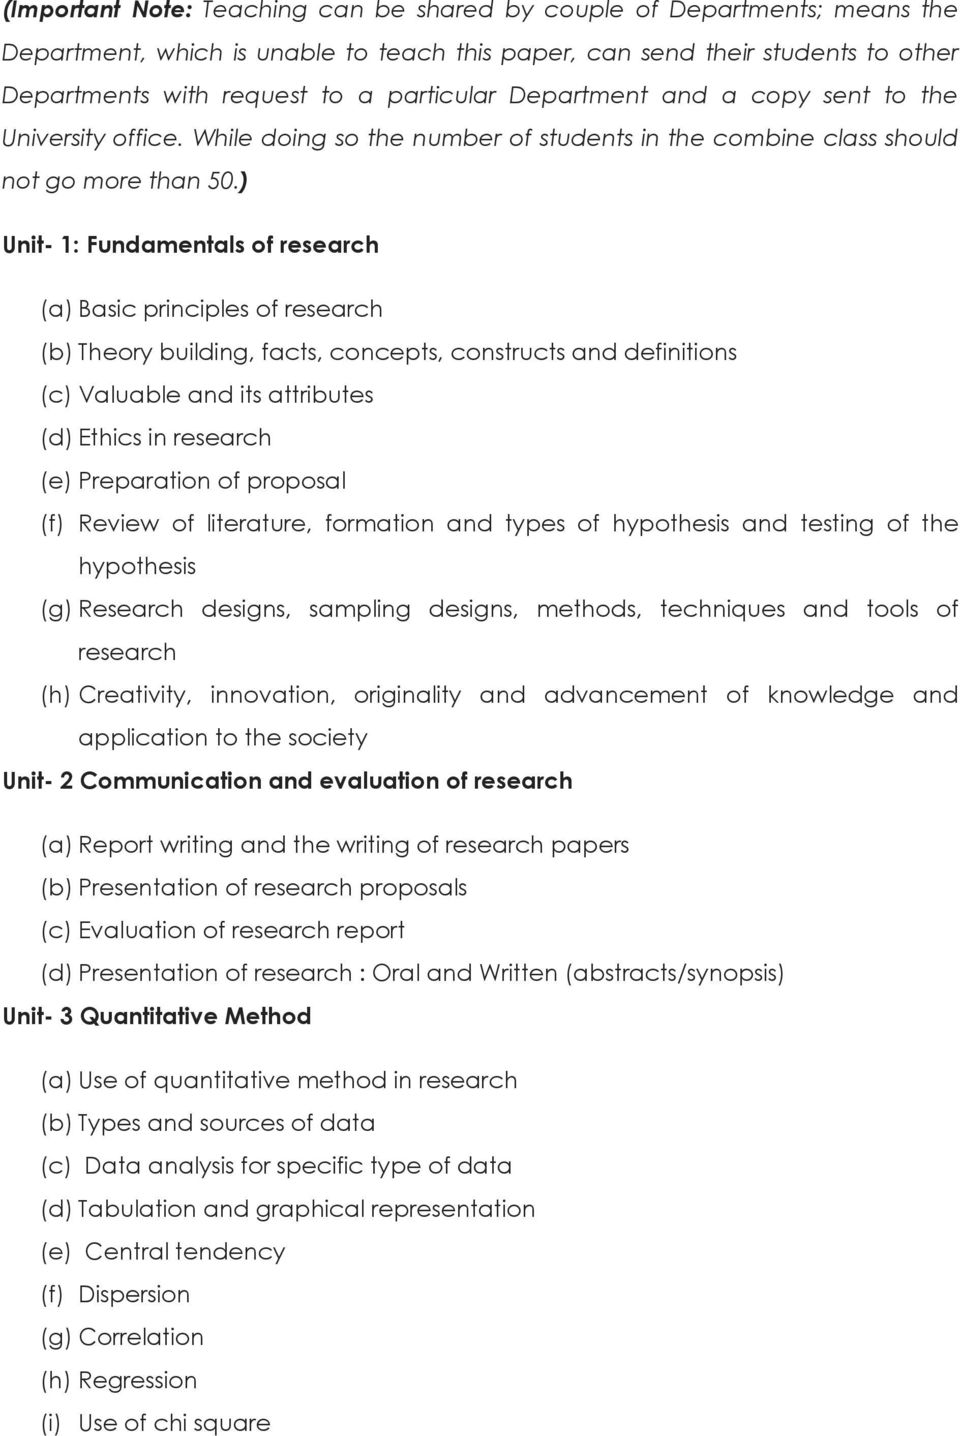 ) Unit- 1: Fundamentals of research (a) Basic principles of research (b) Theory building, facts, concepts, constructs and definitions (c) Valuable and its attributes (d) Ethics in research (e)